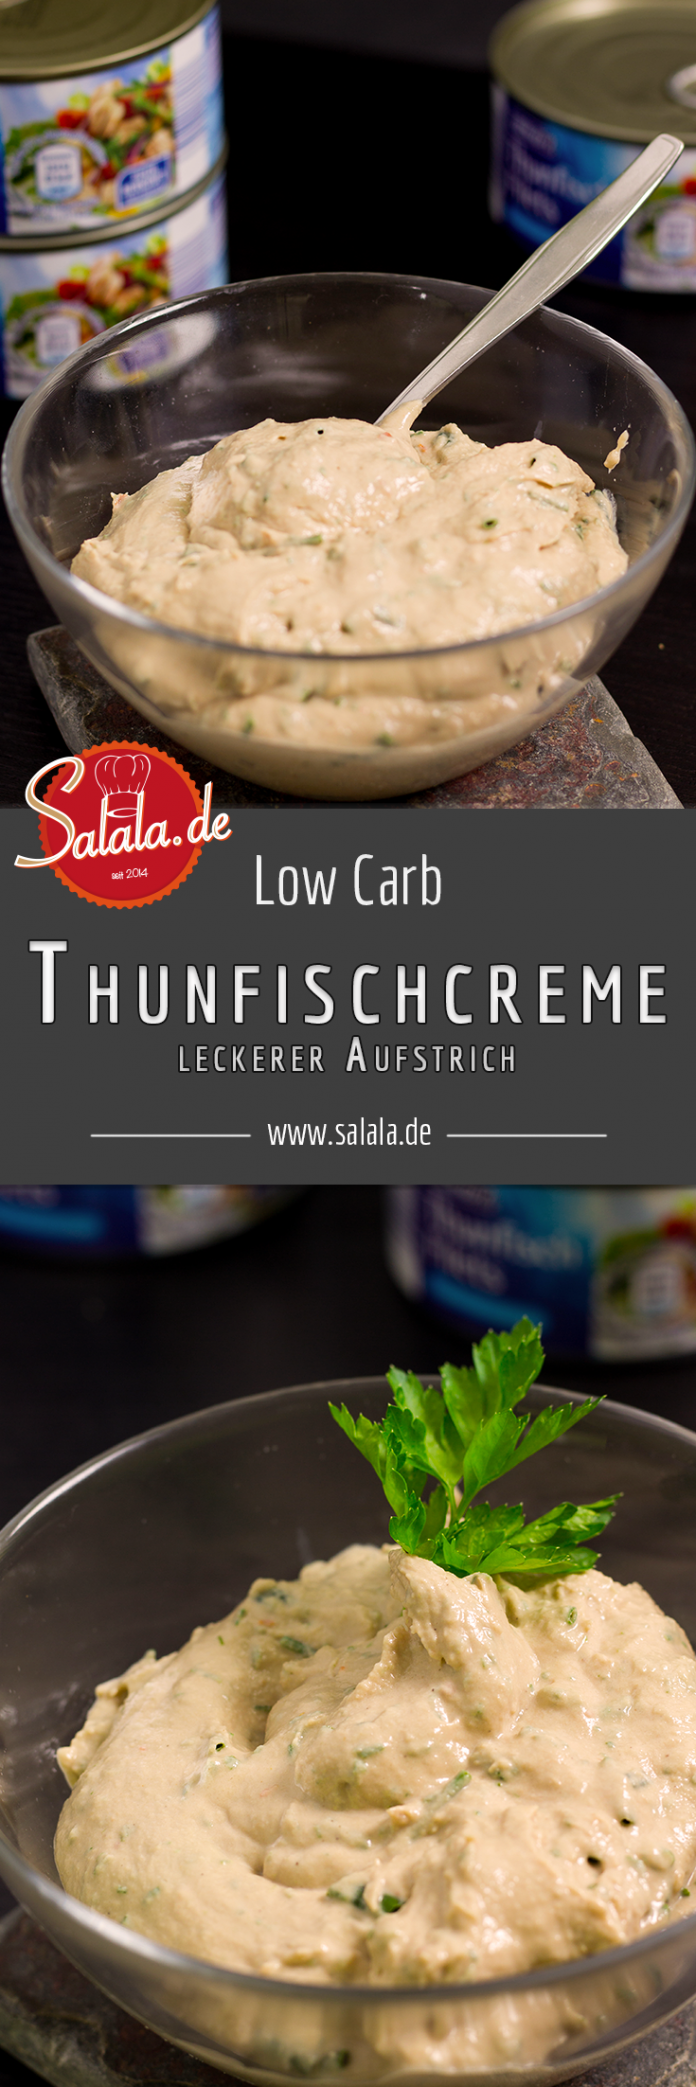 thunfischcreme mit frischk se rezept guddis thermomix. Black Bedroom Furniture Sets. Home Design Ideas